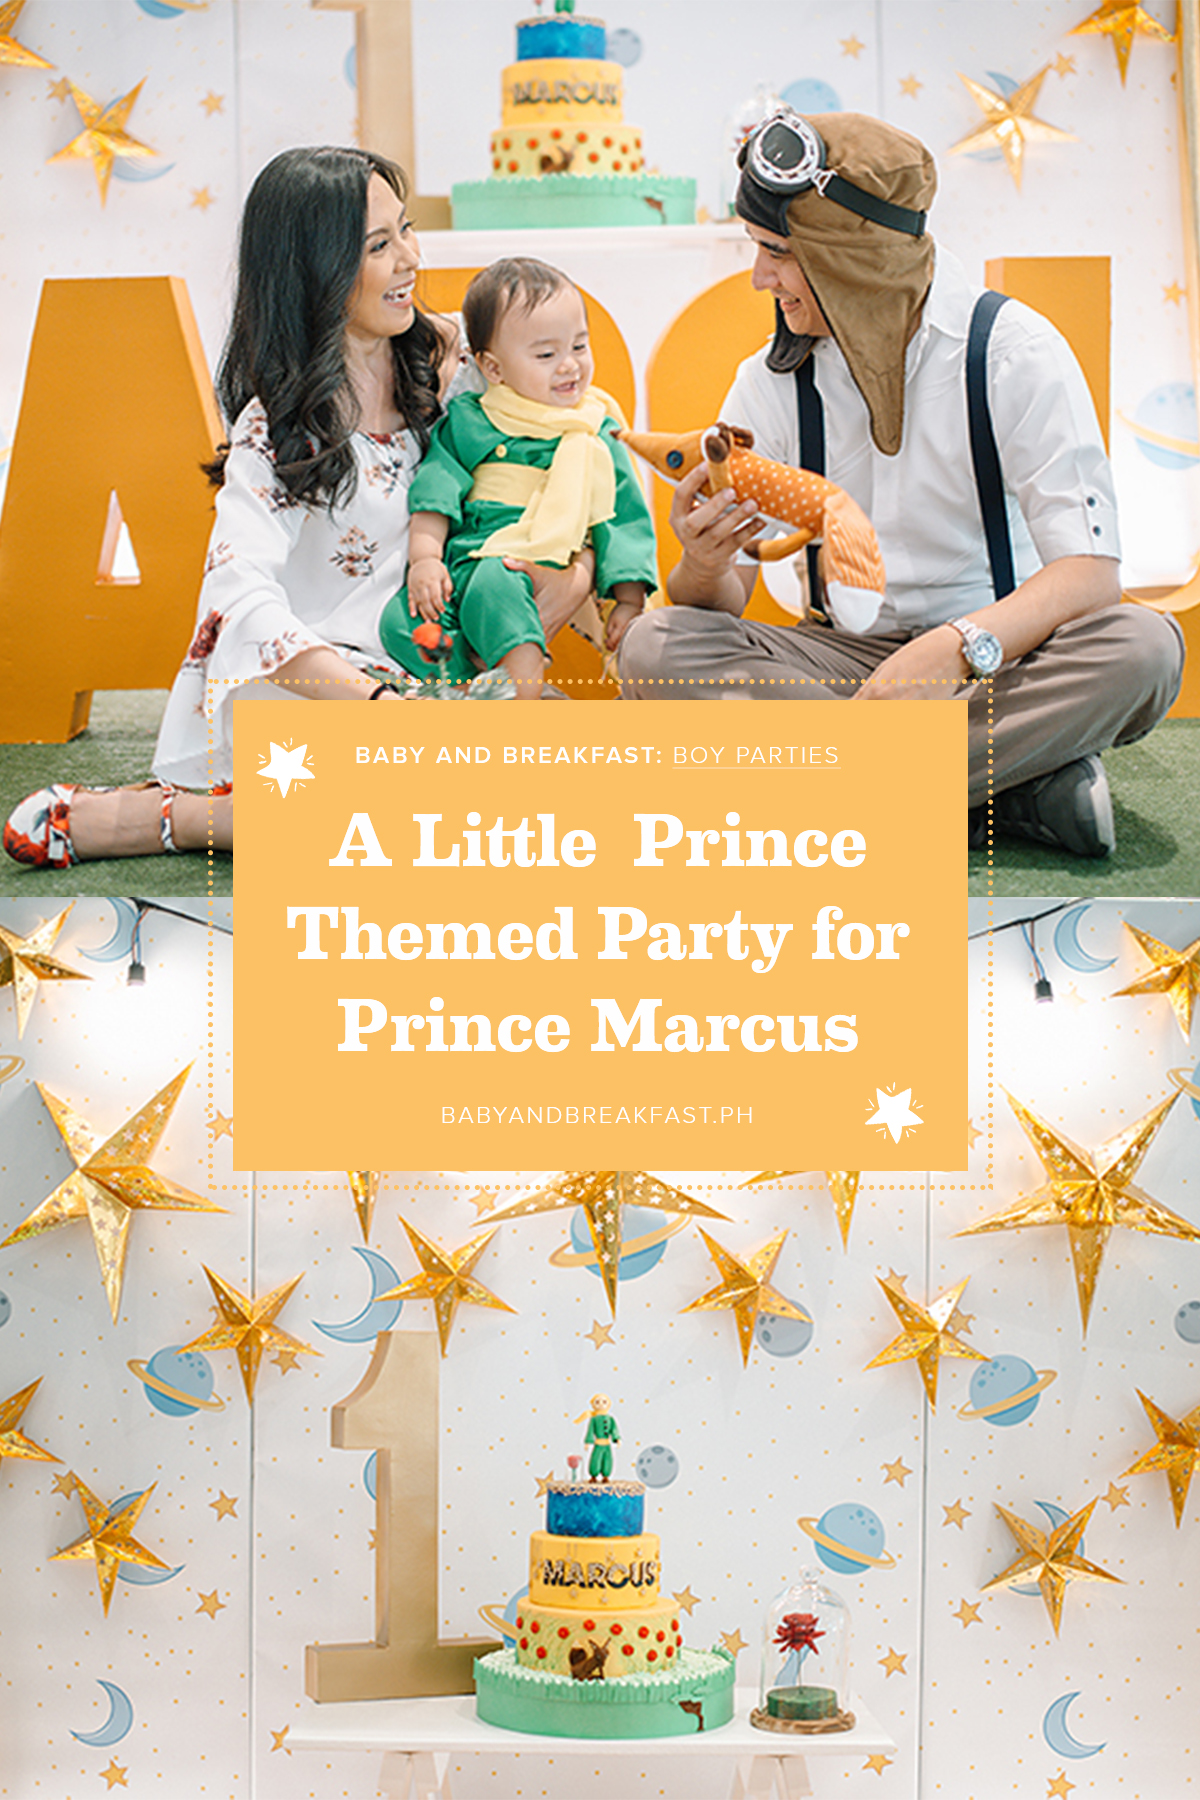 Baby and Breakfast: Boy Parties A Little Prince Themed Party for Prince Marcus